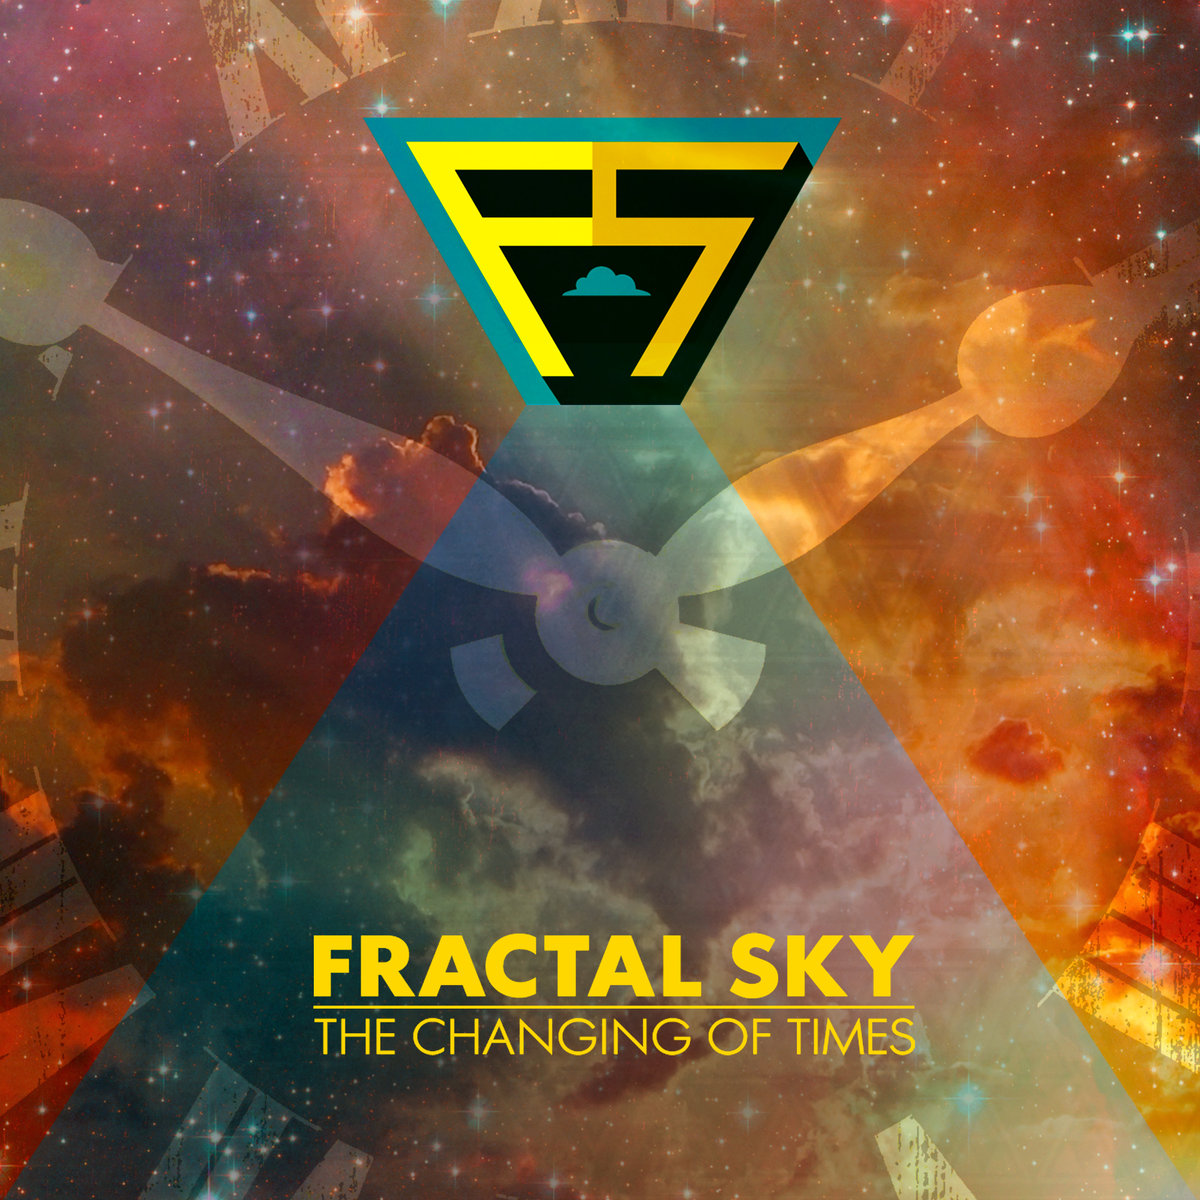 Fractal Sky feat. Krooked Drivers - I See The Light @ 'The Changing of Times' album (electro, hip hop)